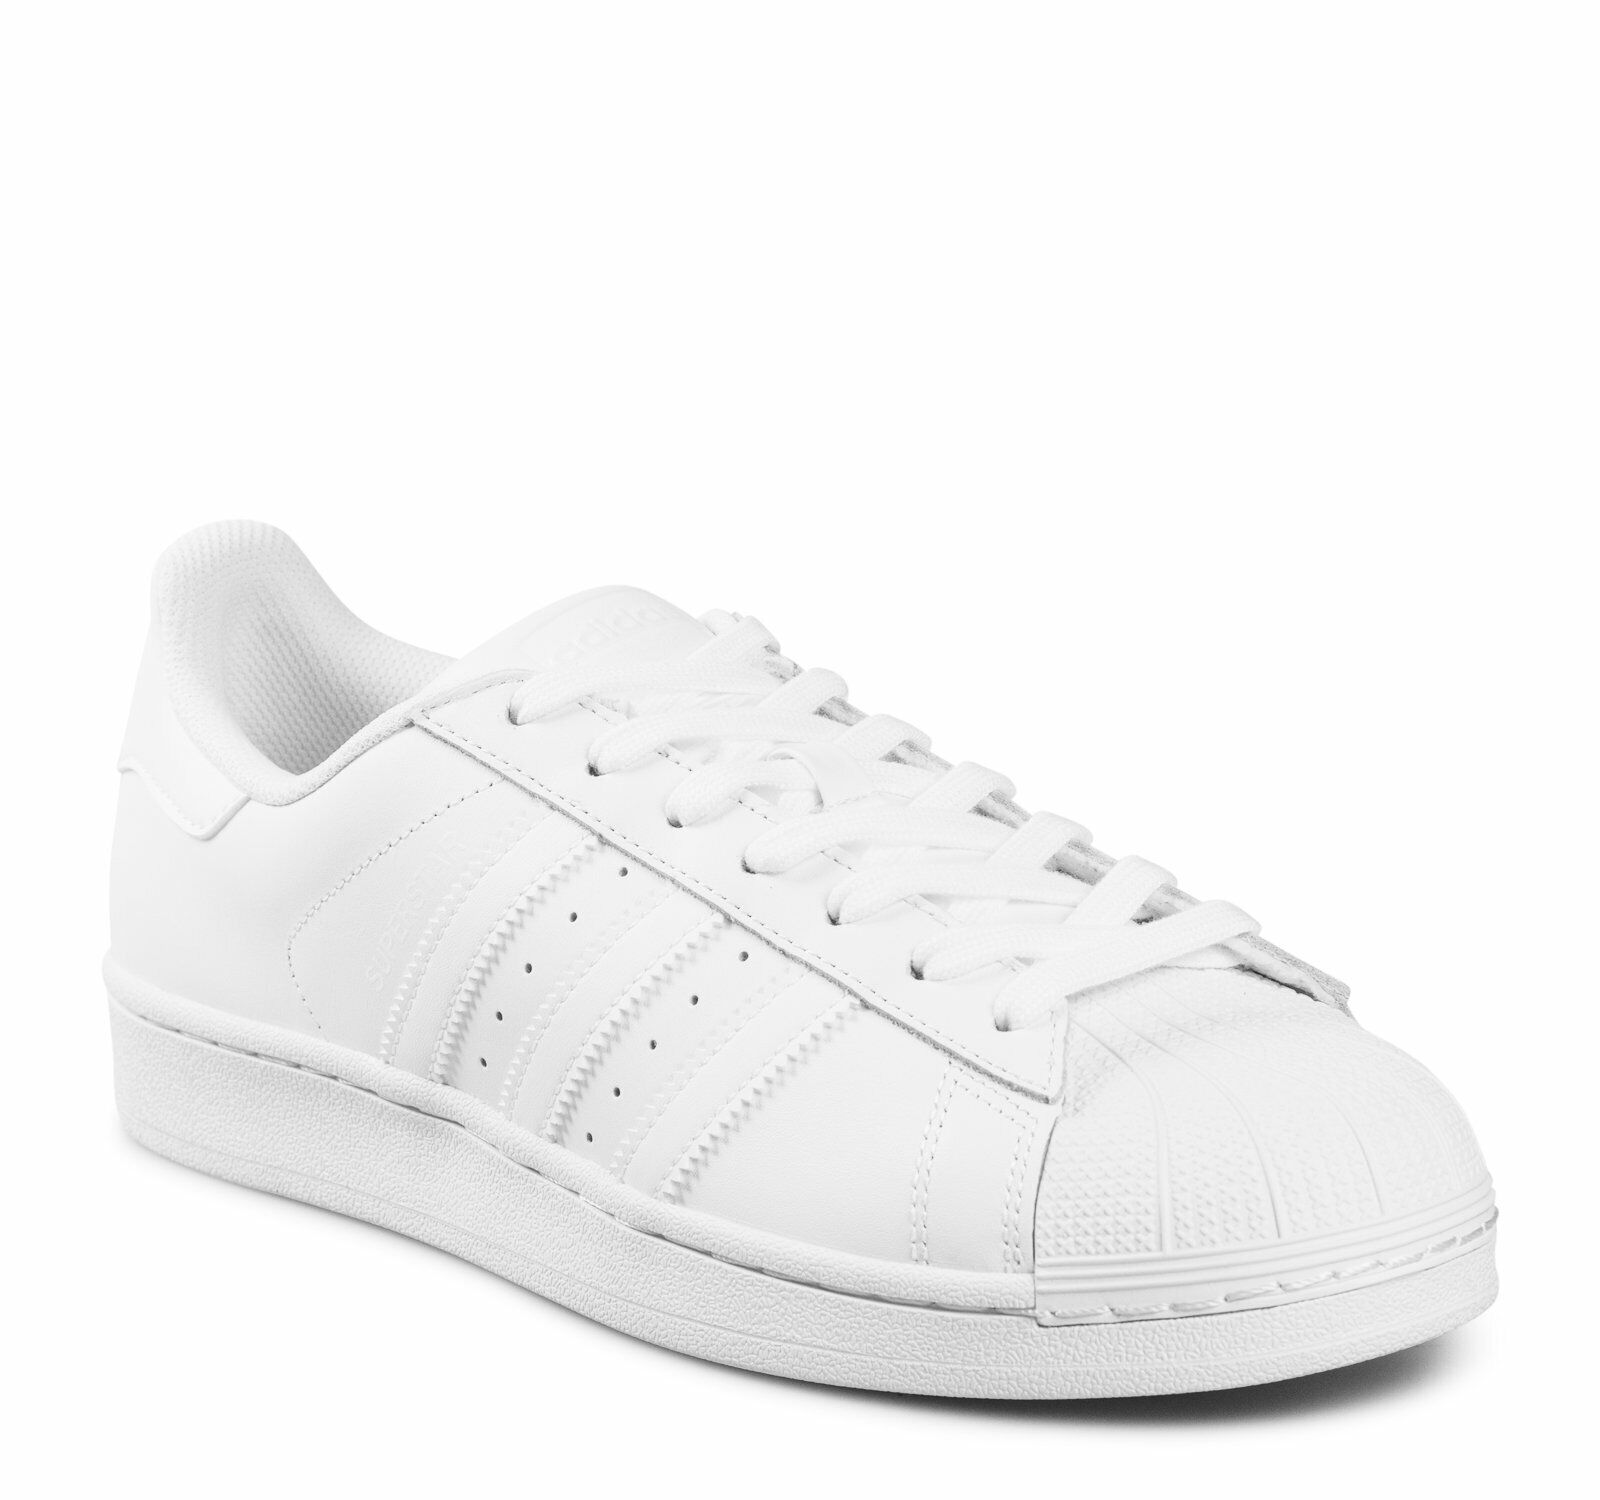 Adidas Superstar Foundation Casual Sneakers B27136 White